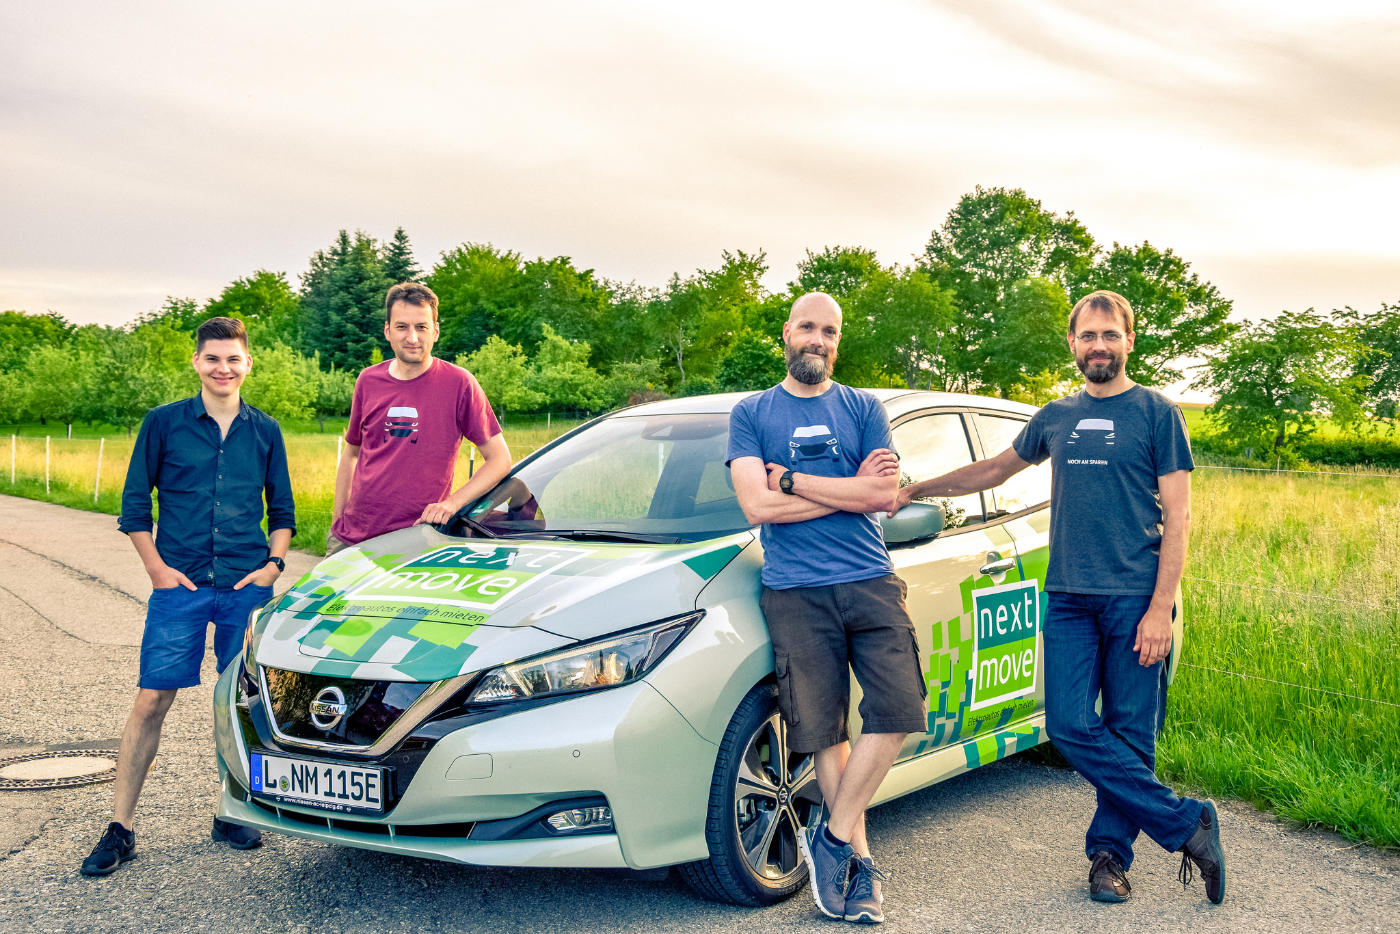 www.nextmove.de Cleanelectric PodCast Elektroautovermieter nextmove 2018